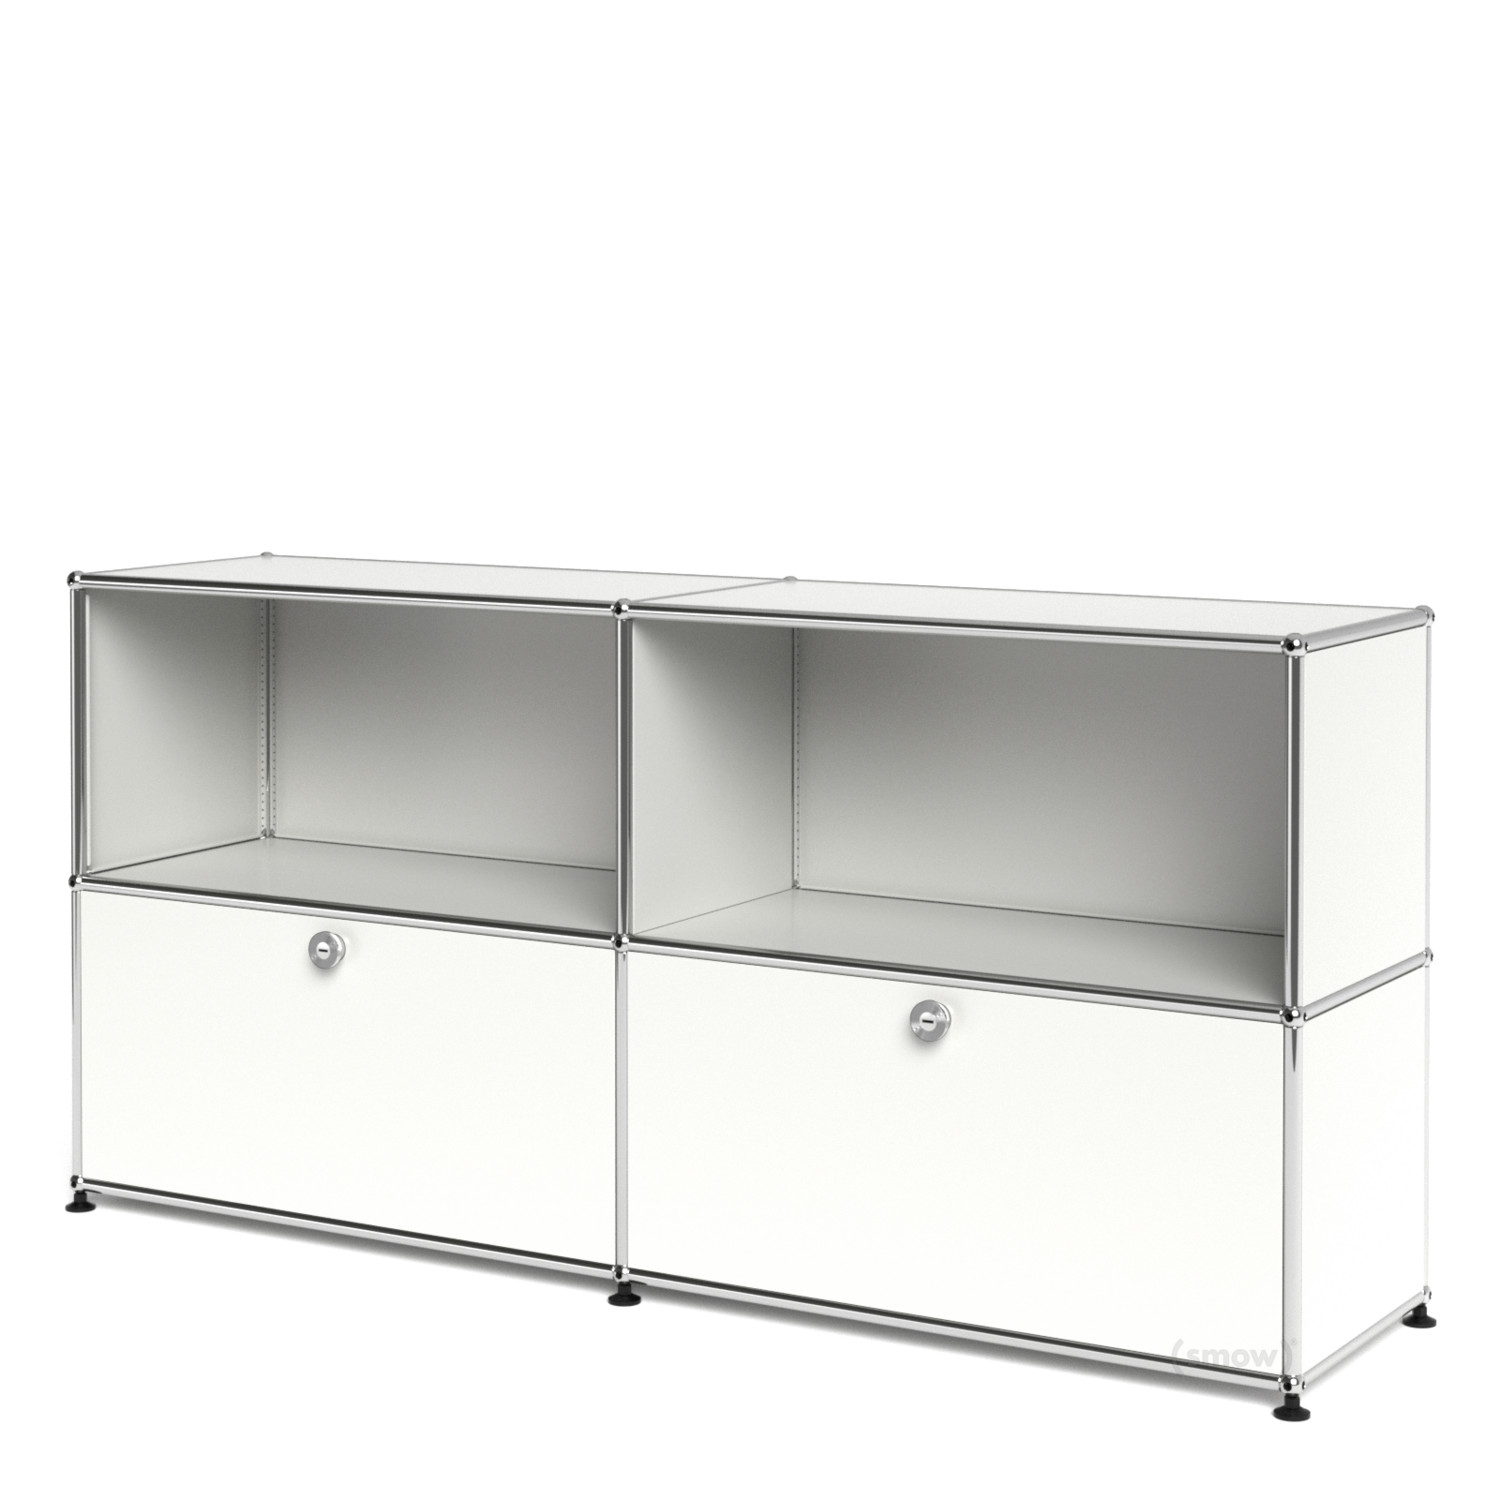 usm haller sideboard l with 2 drop down doors pure white ral 9010 by fritz haller paul. Black Bedroom Furniture Sets. Home Design Ideas